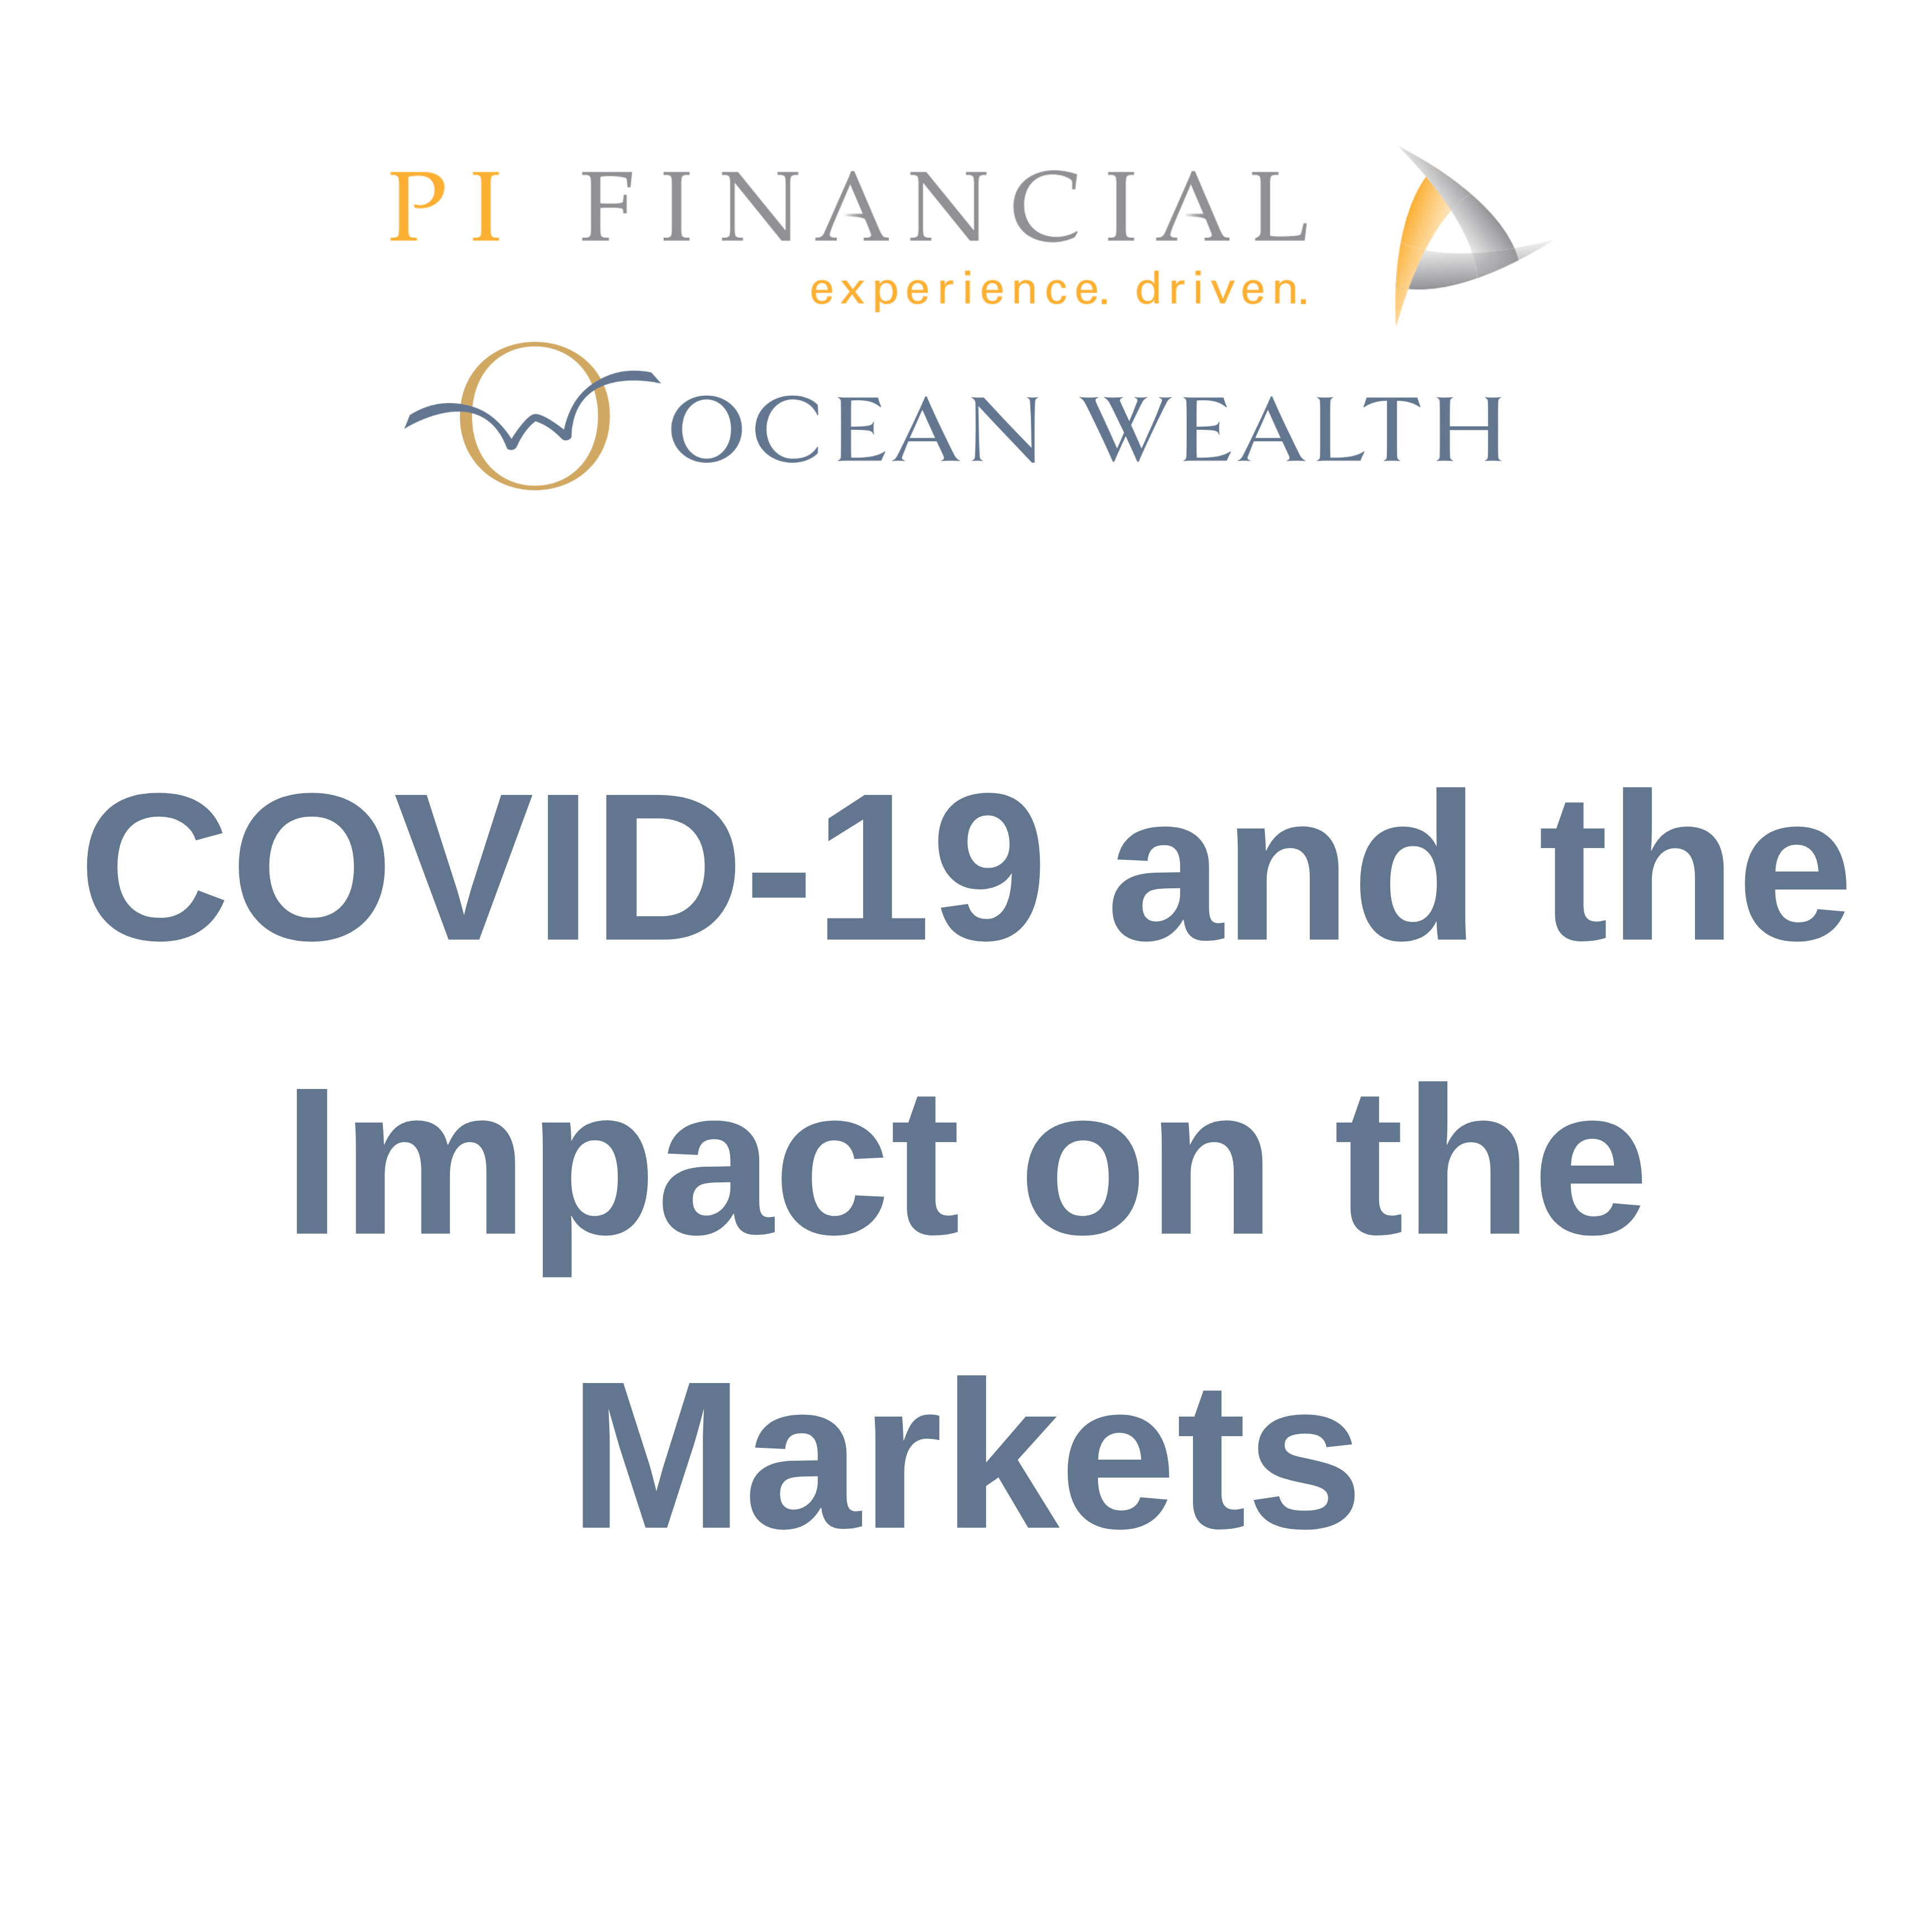 COVID-19 and the Impact on the Markets